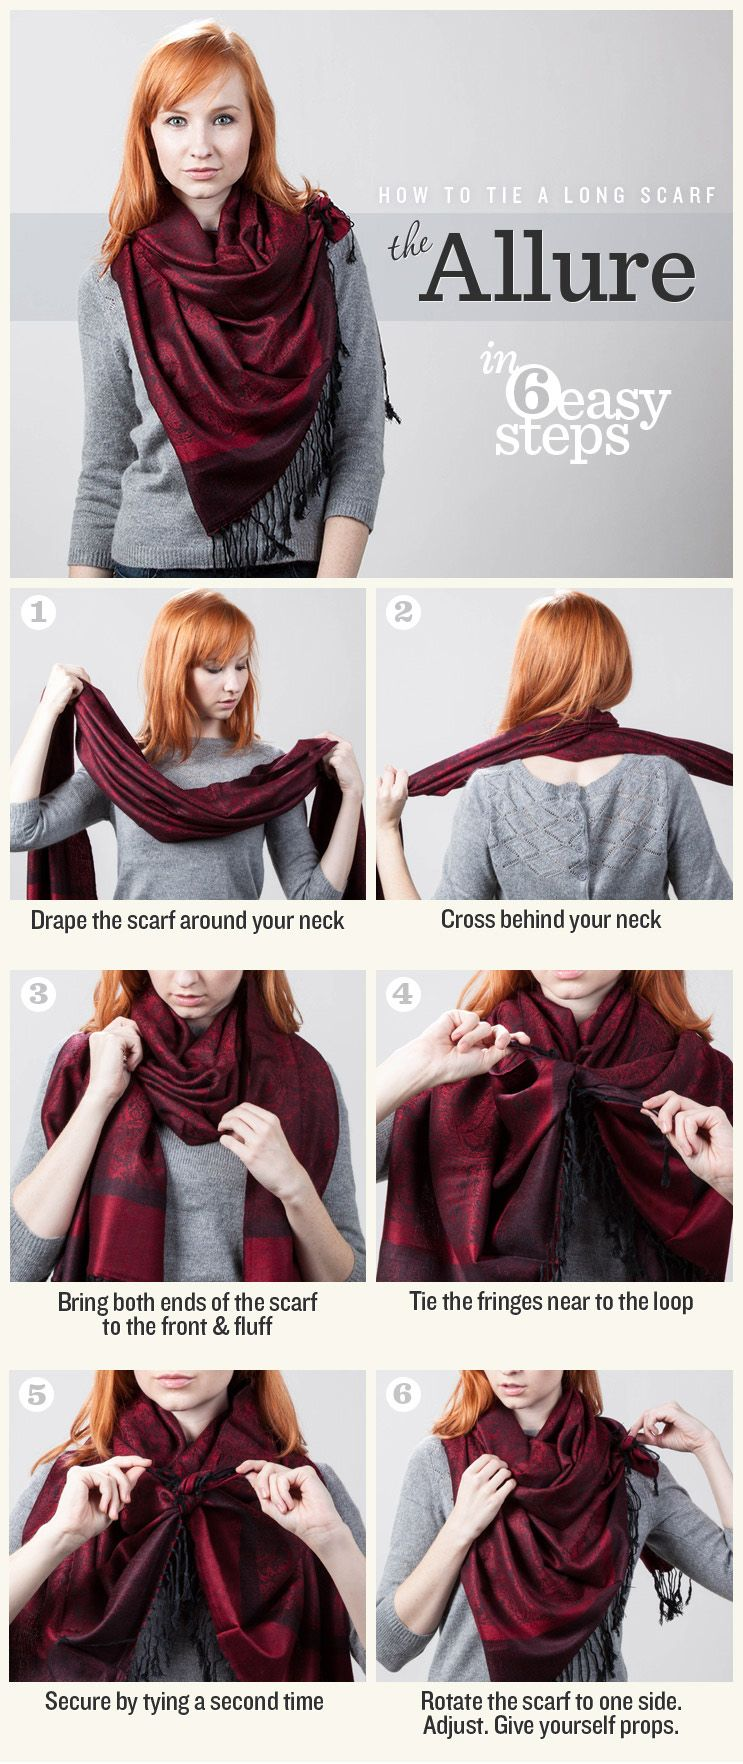 d89724d3b165 Re  Ways to Tie a Scarf   fashion   Pinterest   Foulard, Echarpe and ...